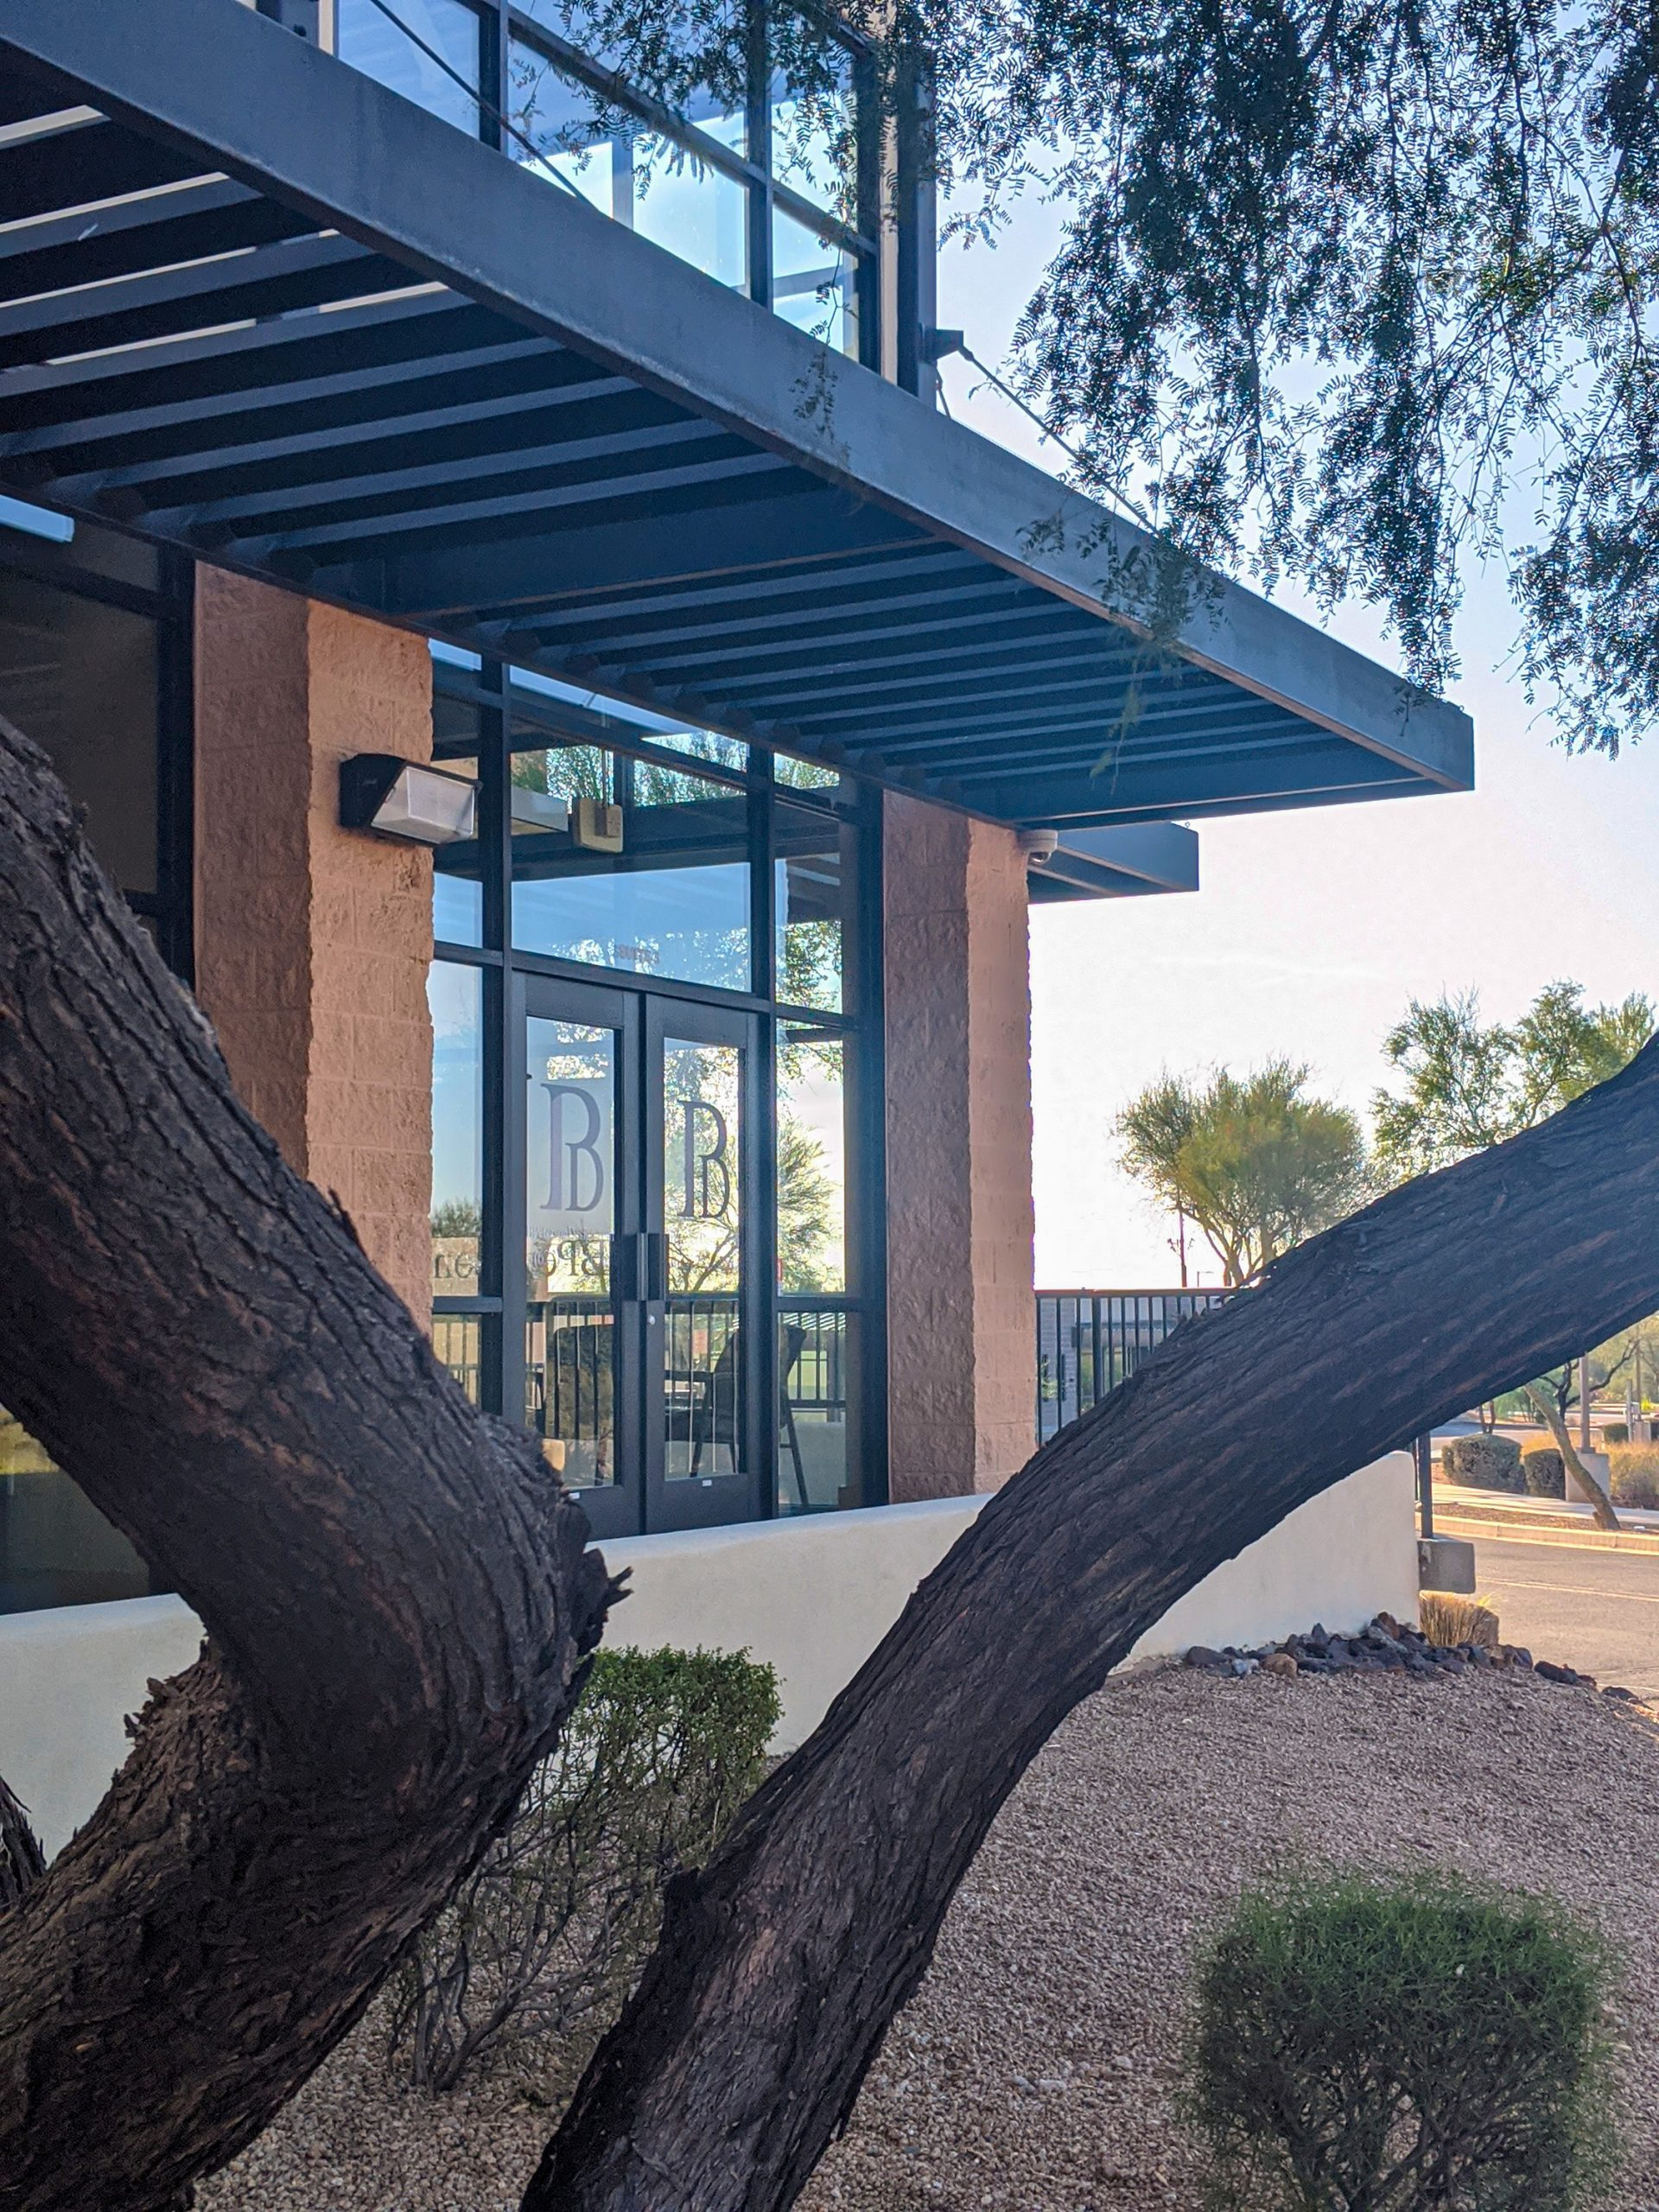 BPetersonDesign's Office in Cave Creek